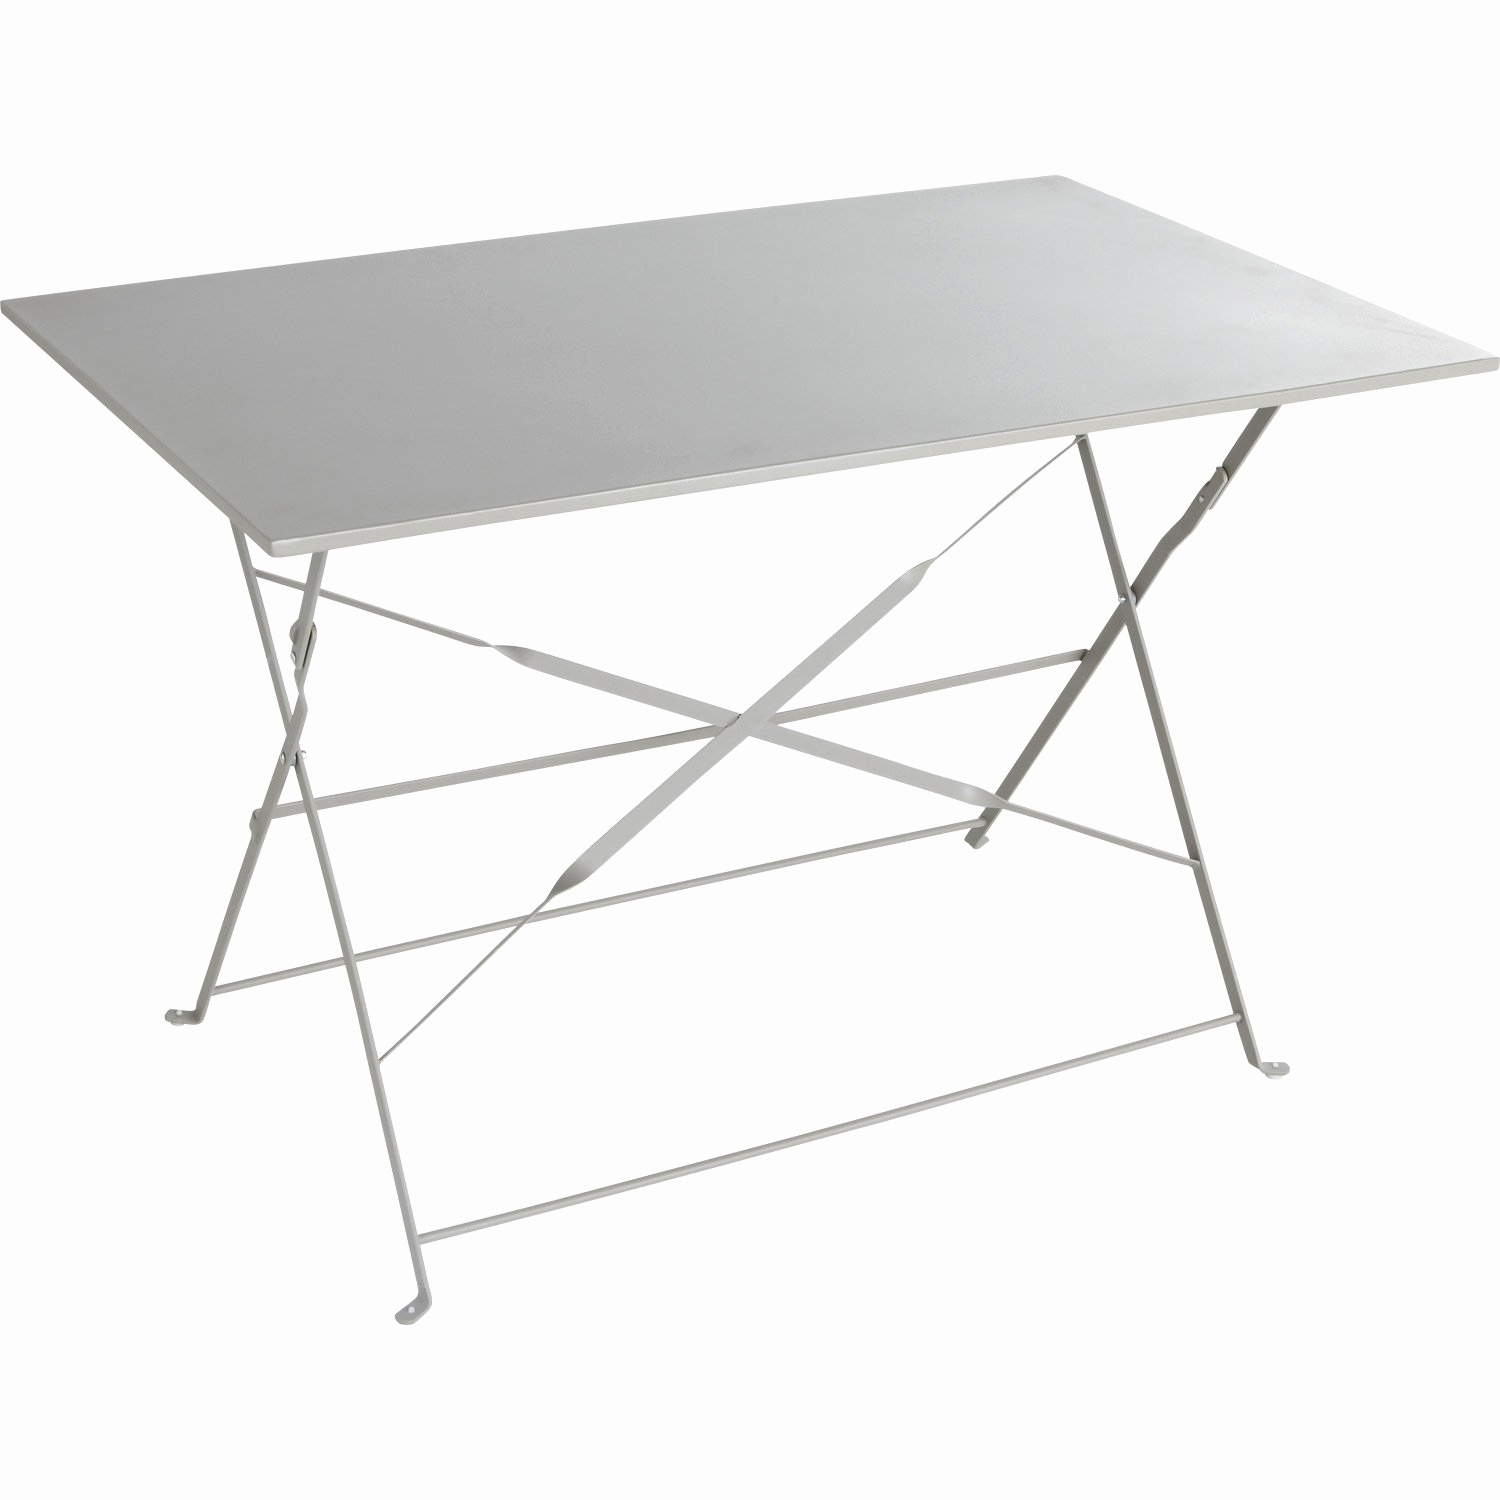 Table Rabattable Leroy Merlin Frais Images Table Rabattable Leroy Merlin élégant Best Table De Jardin Sur